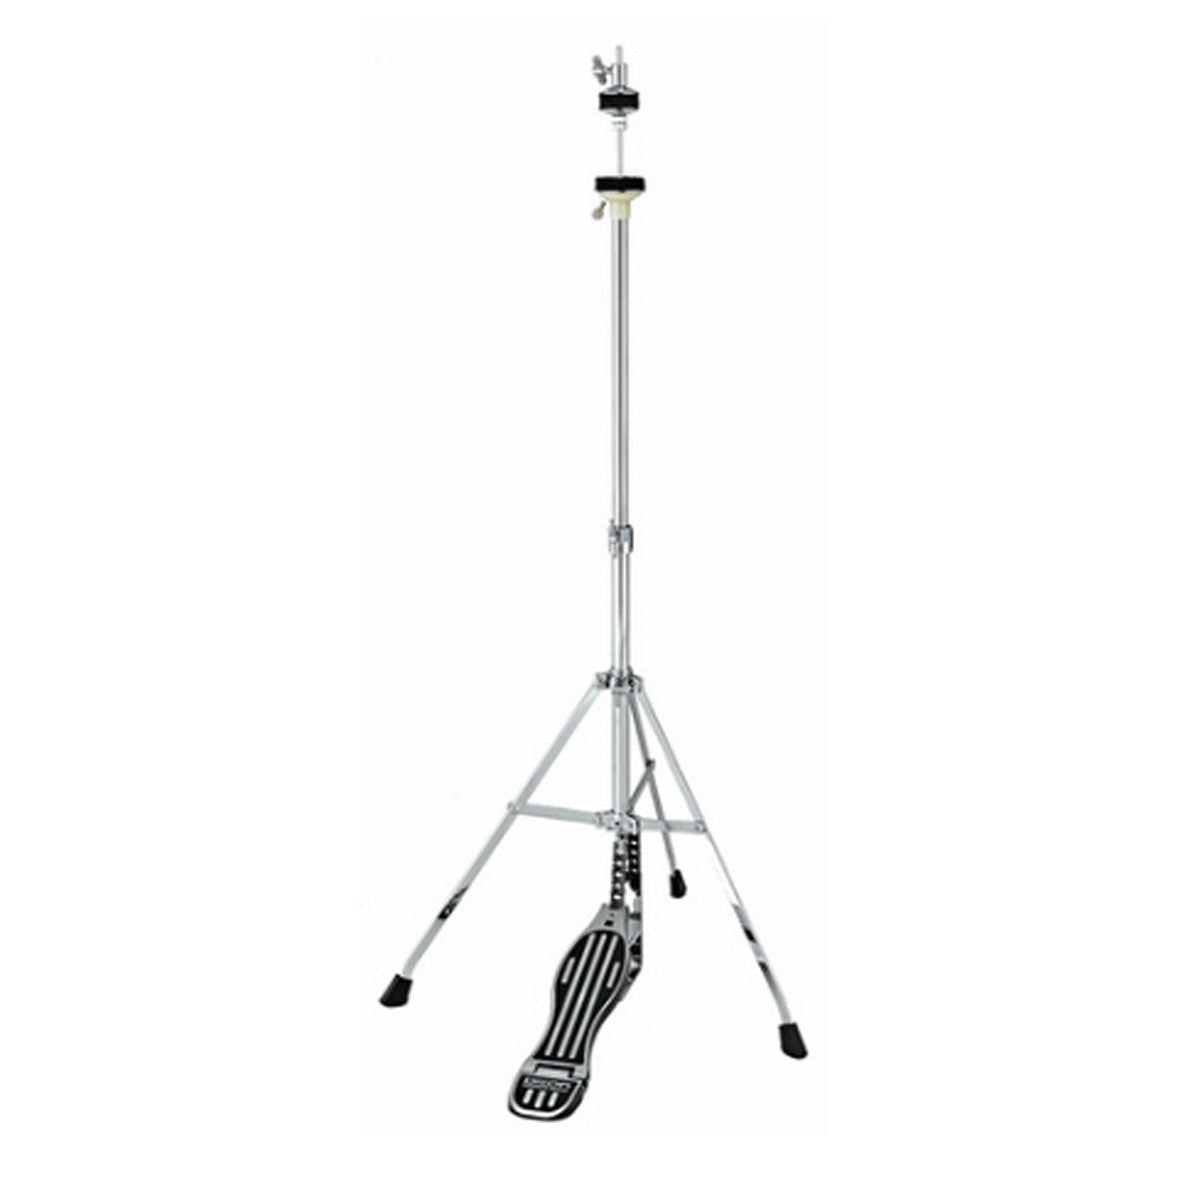 Dixon 9260 Series Hi Hat Stand Light-Weight Single Braced- PSH9260